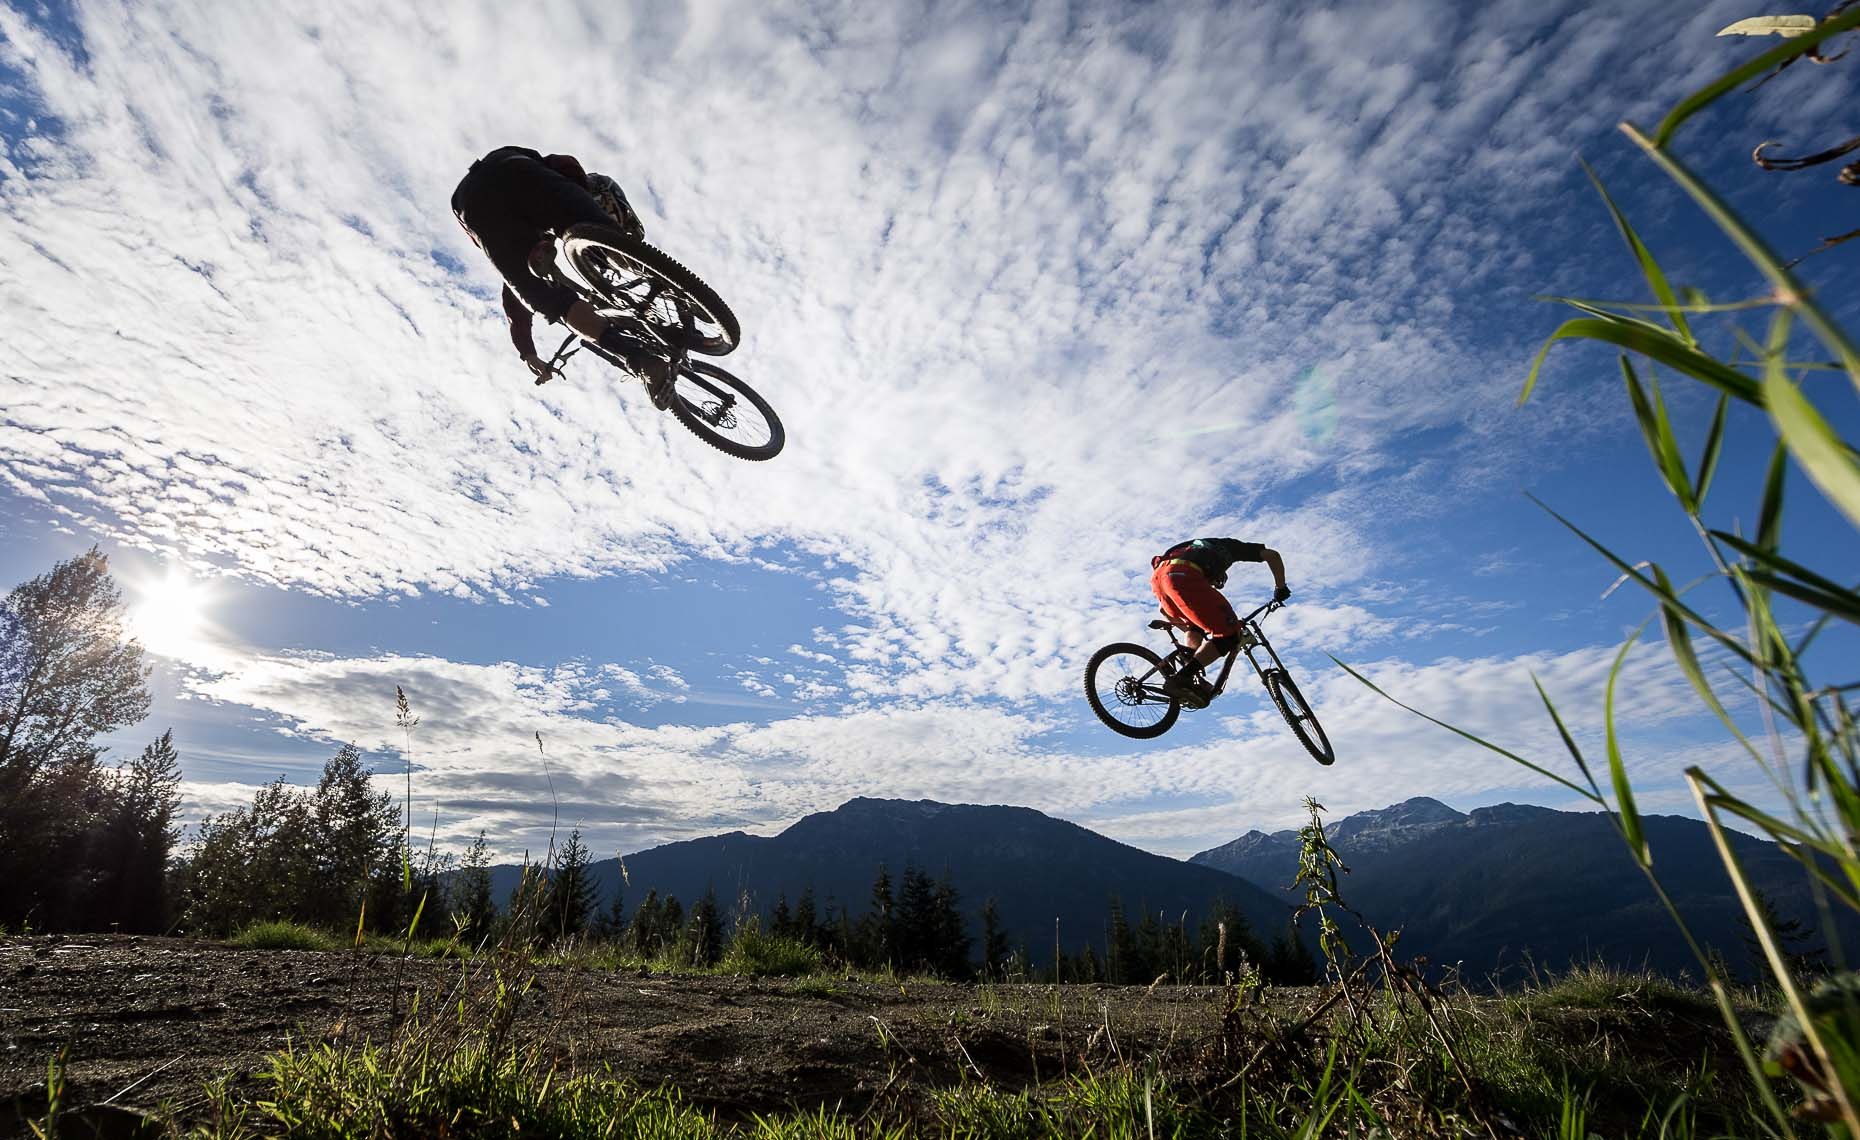 Whistler bike park jump action shot with mountains.